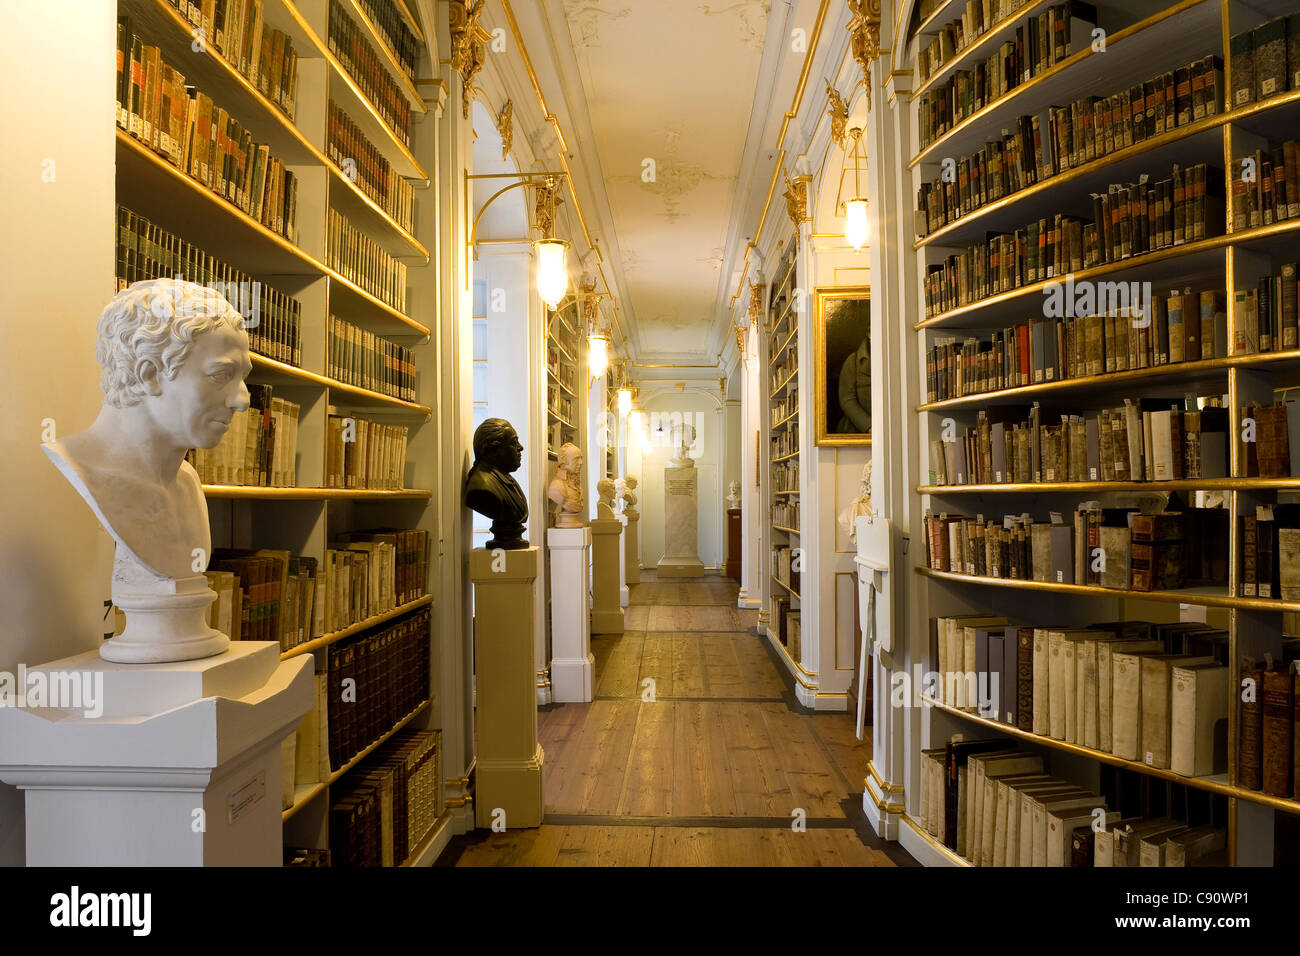 The historic Rococo room of the Duchess Anna Amalia Library, Weimar, Thuringia, Germany, Europe - Stock Image